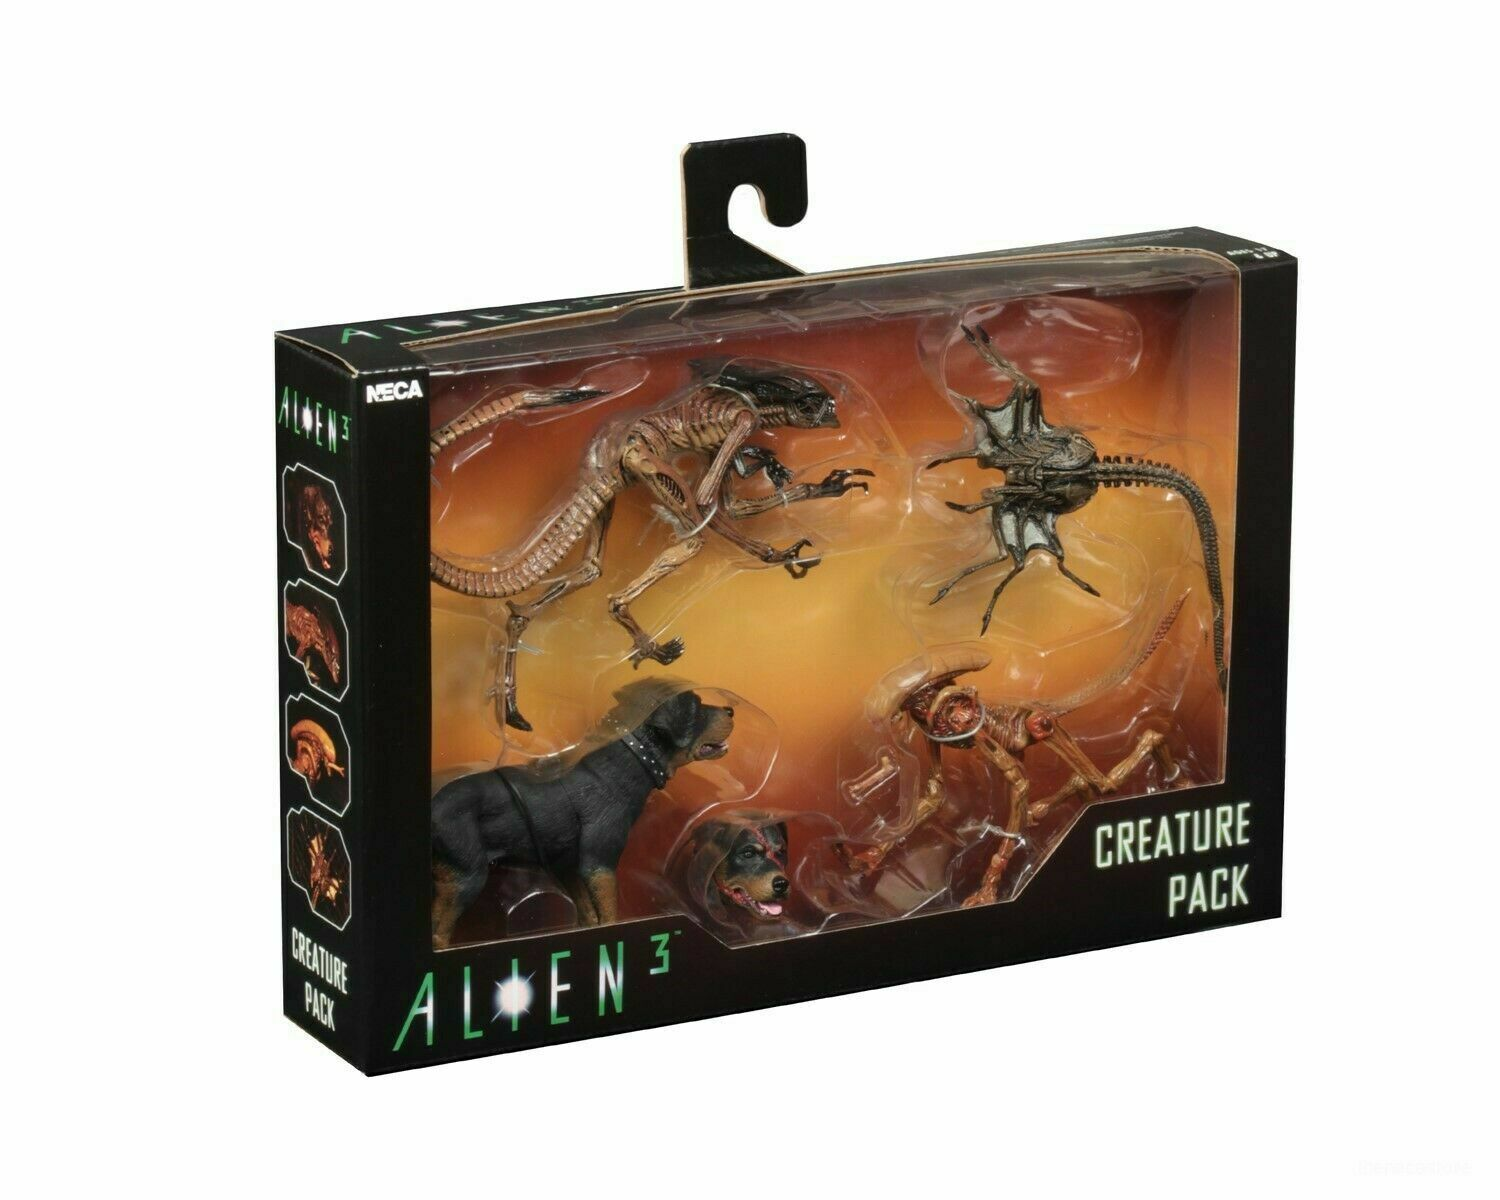 NECA ALIENS 3 creatura Accessorio Pack